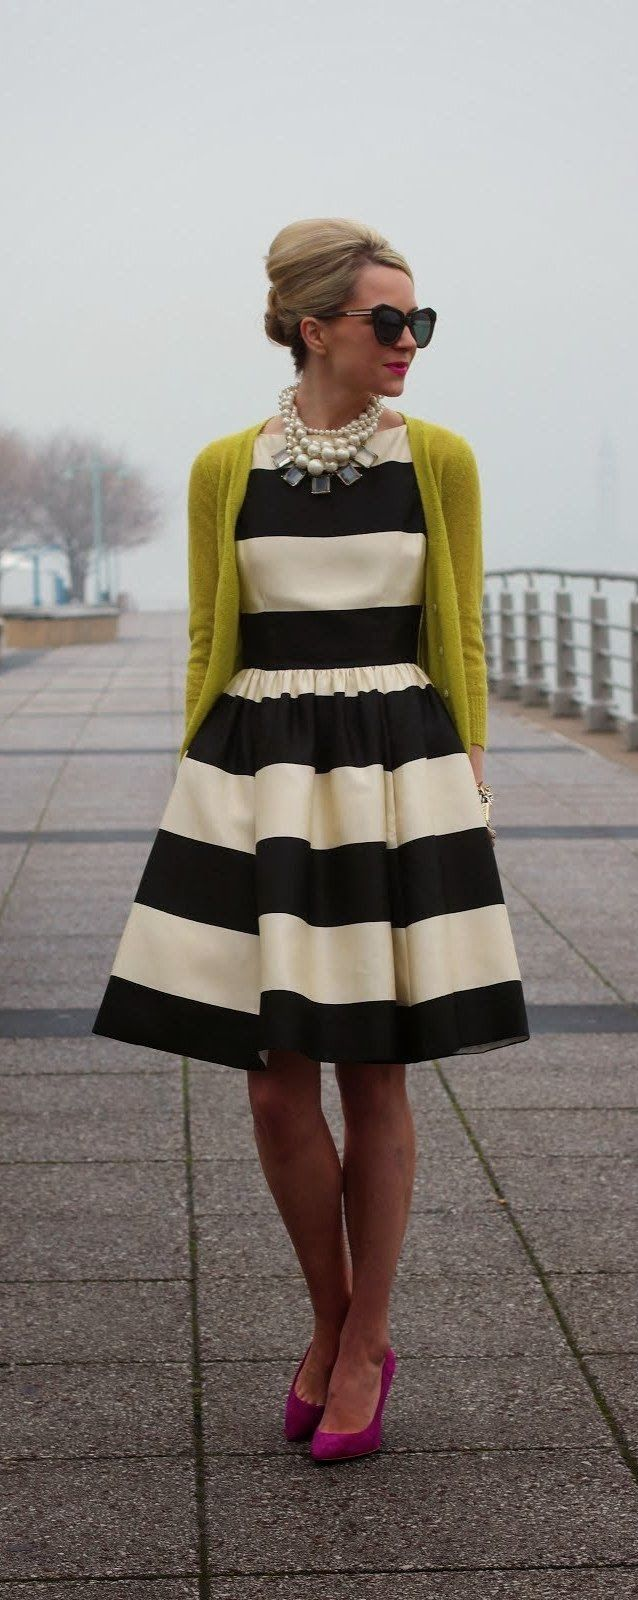 Stripes Dress With Sunflower Cardigan and Pumps  #fashion #style